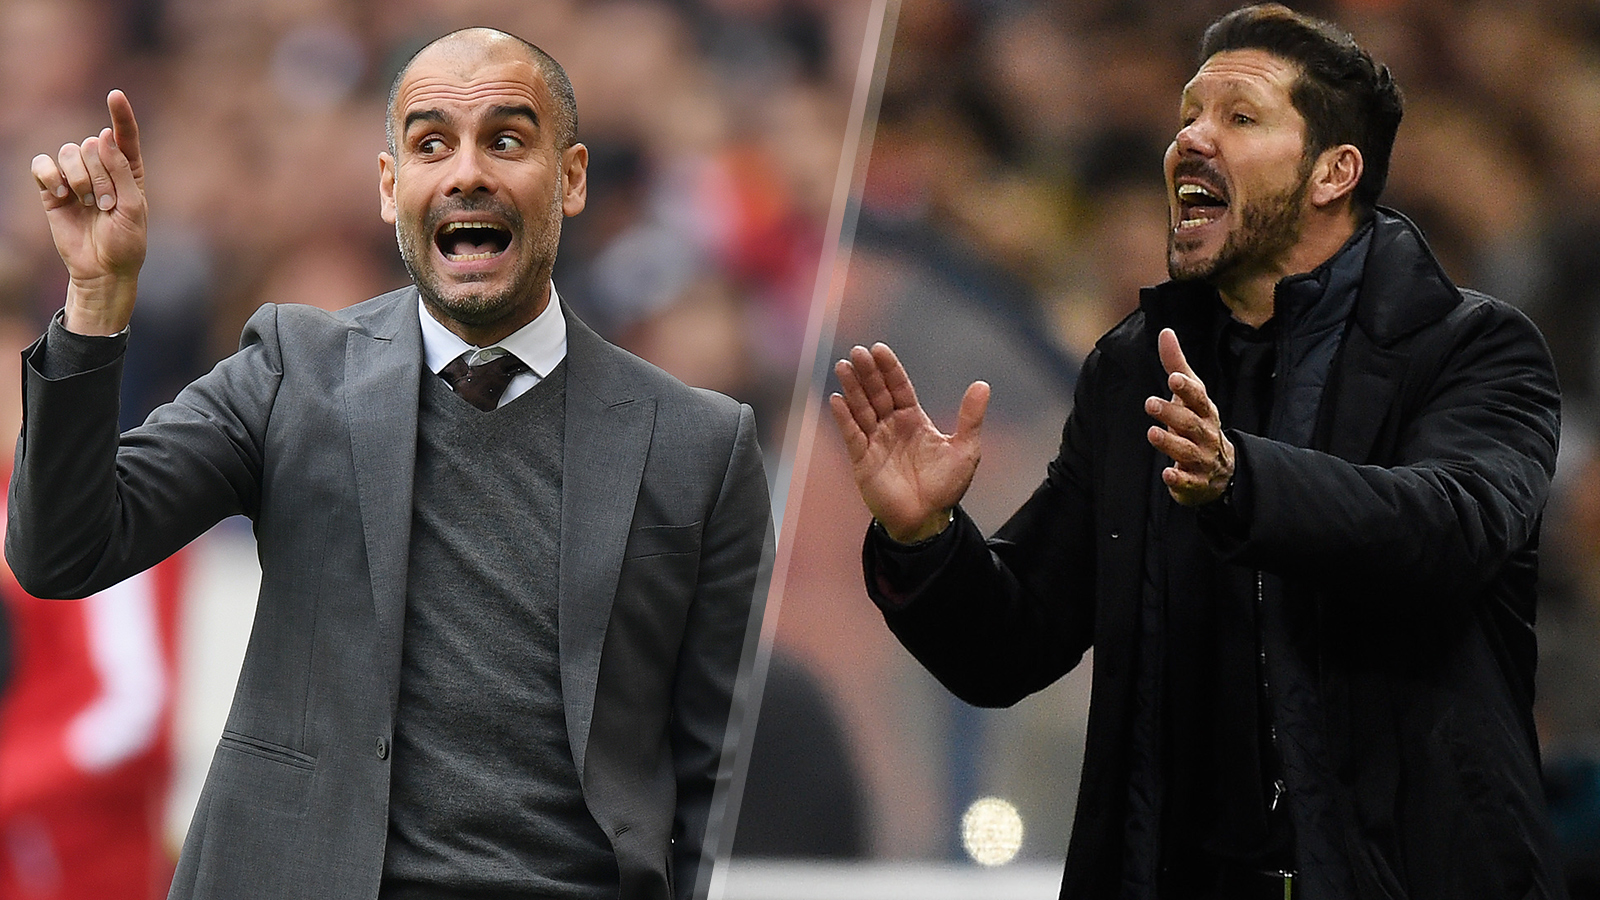 Bayern Munich vs. Atletico Madrid is really a clash of managers and styles